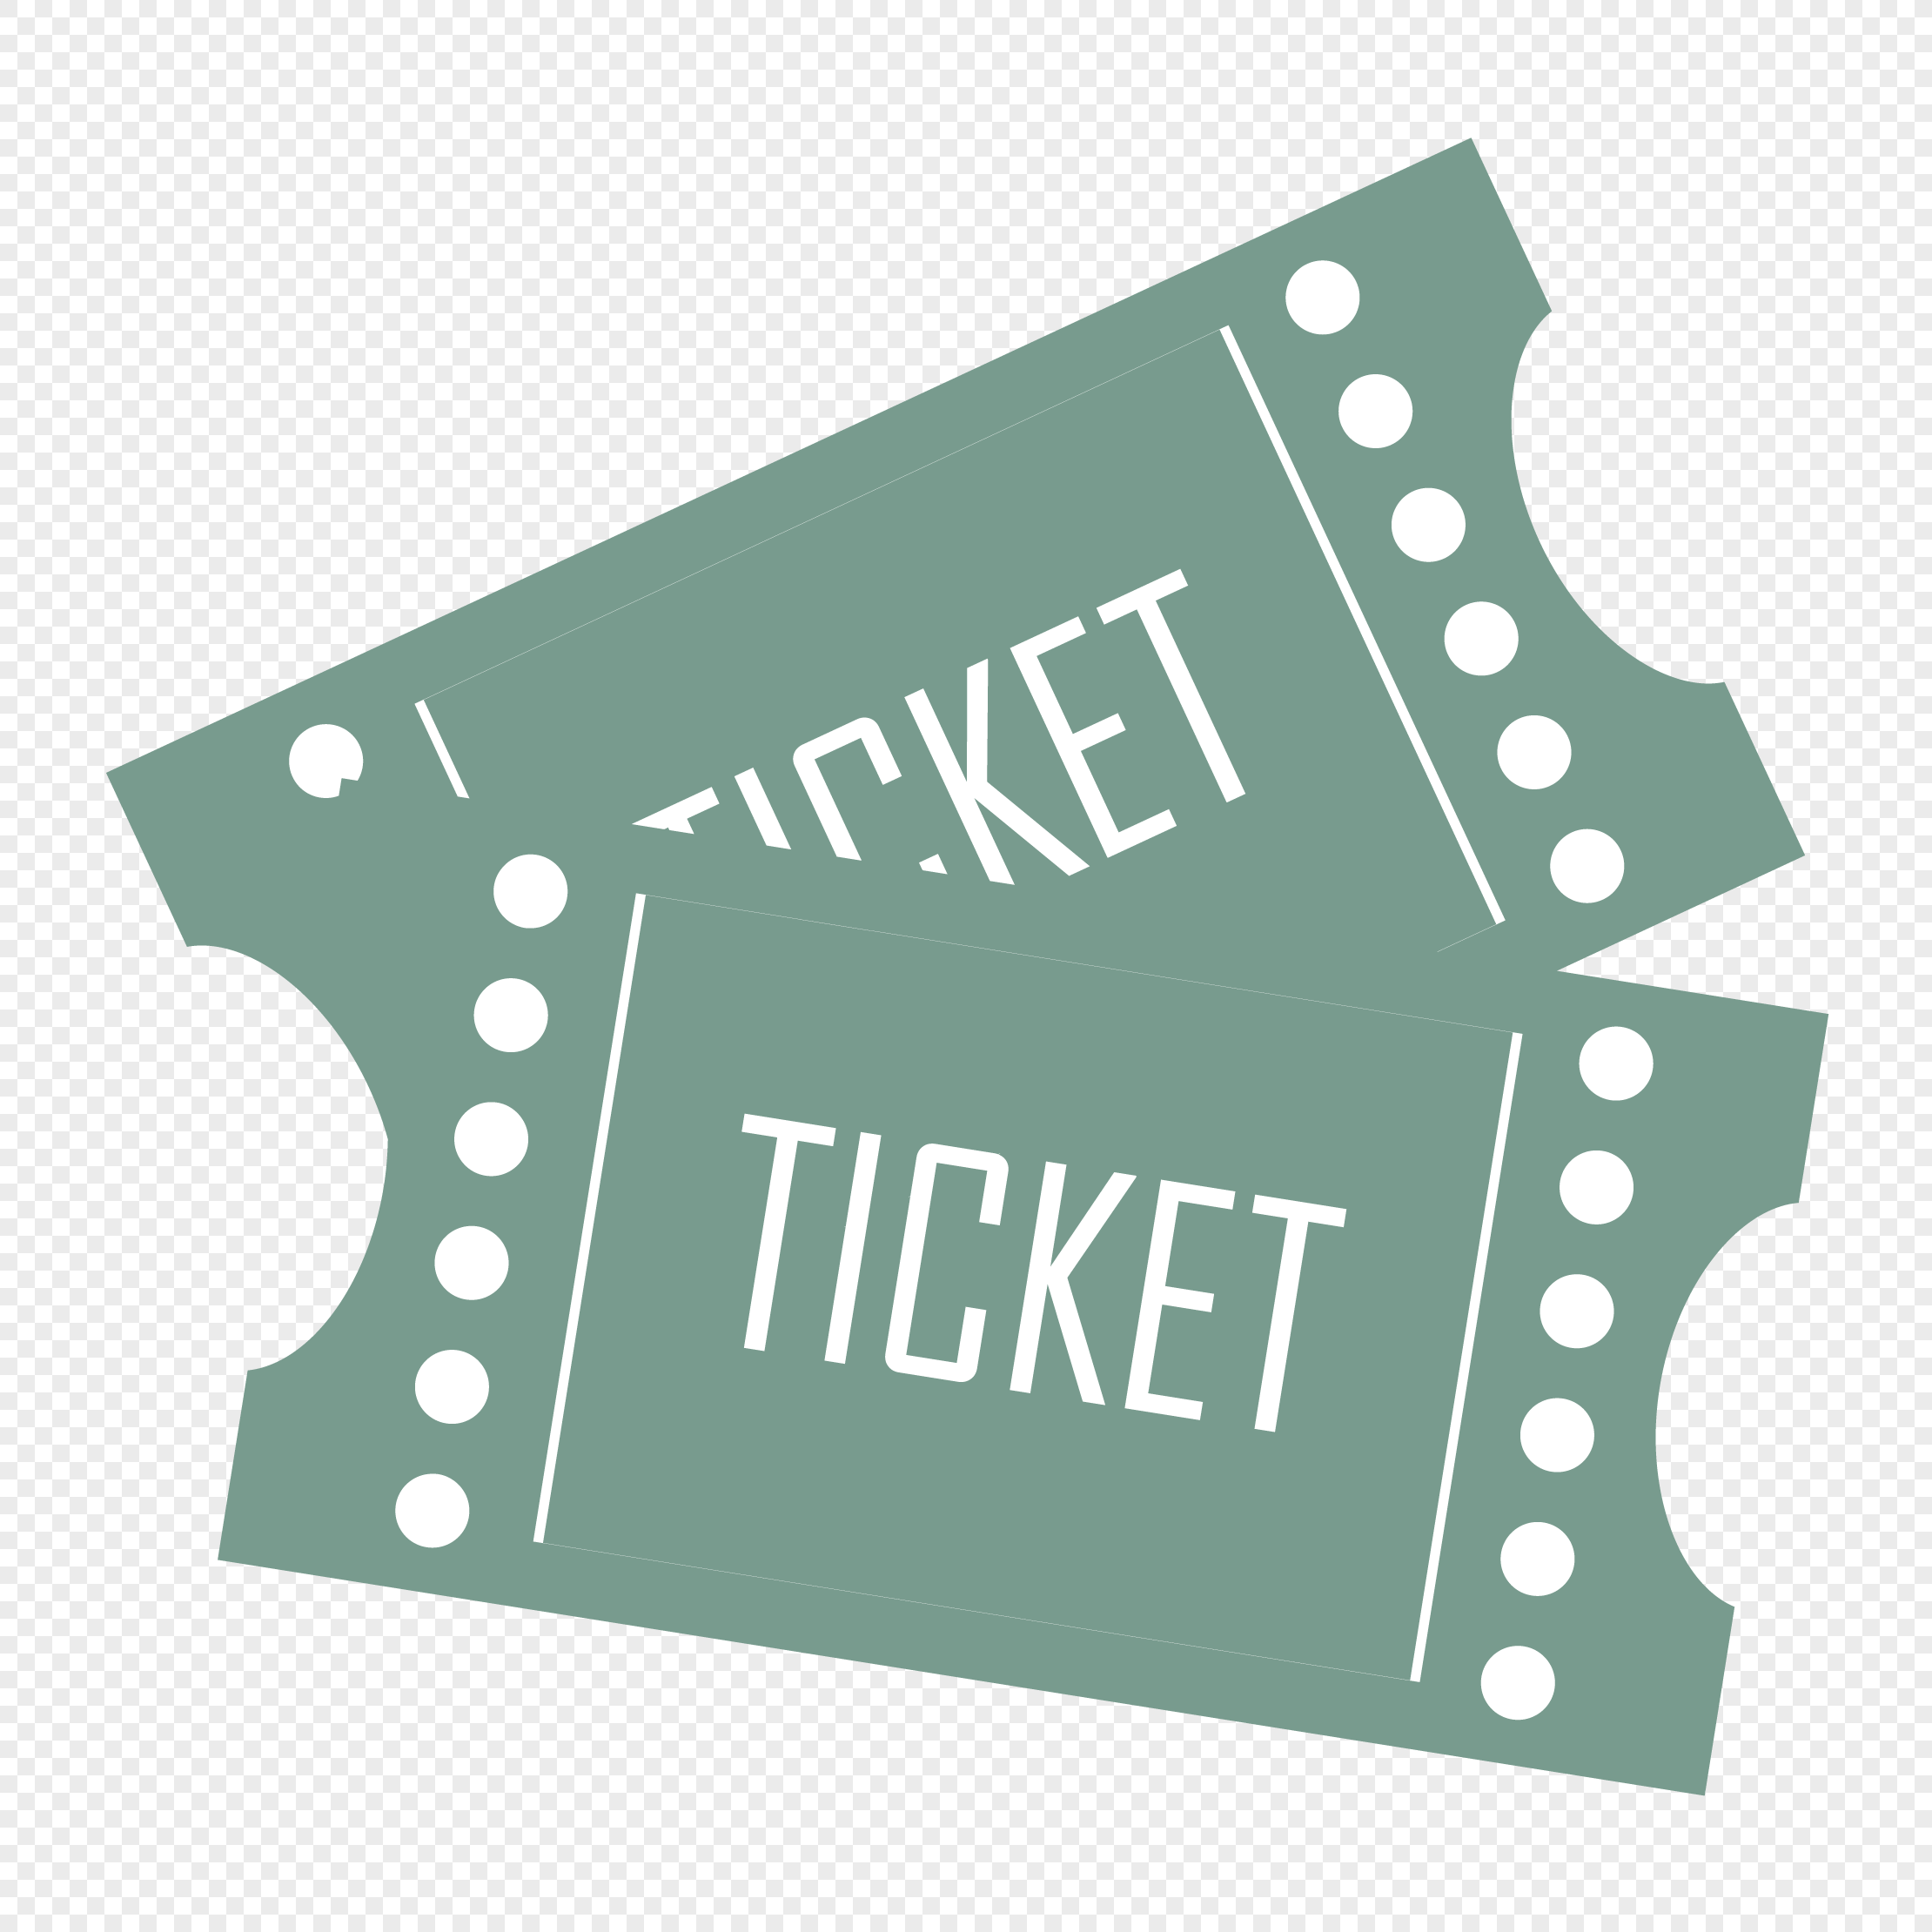 movie ticket icon png imagepicture free download